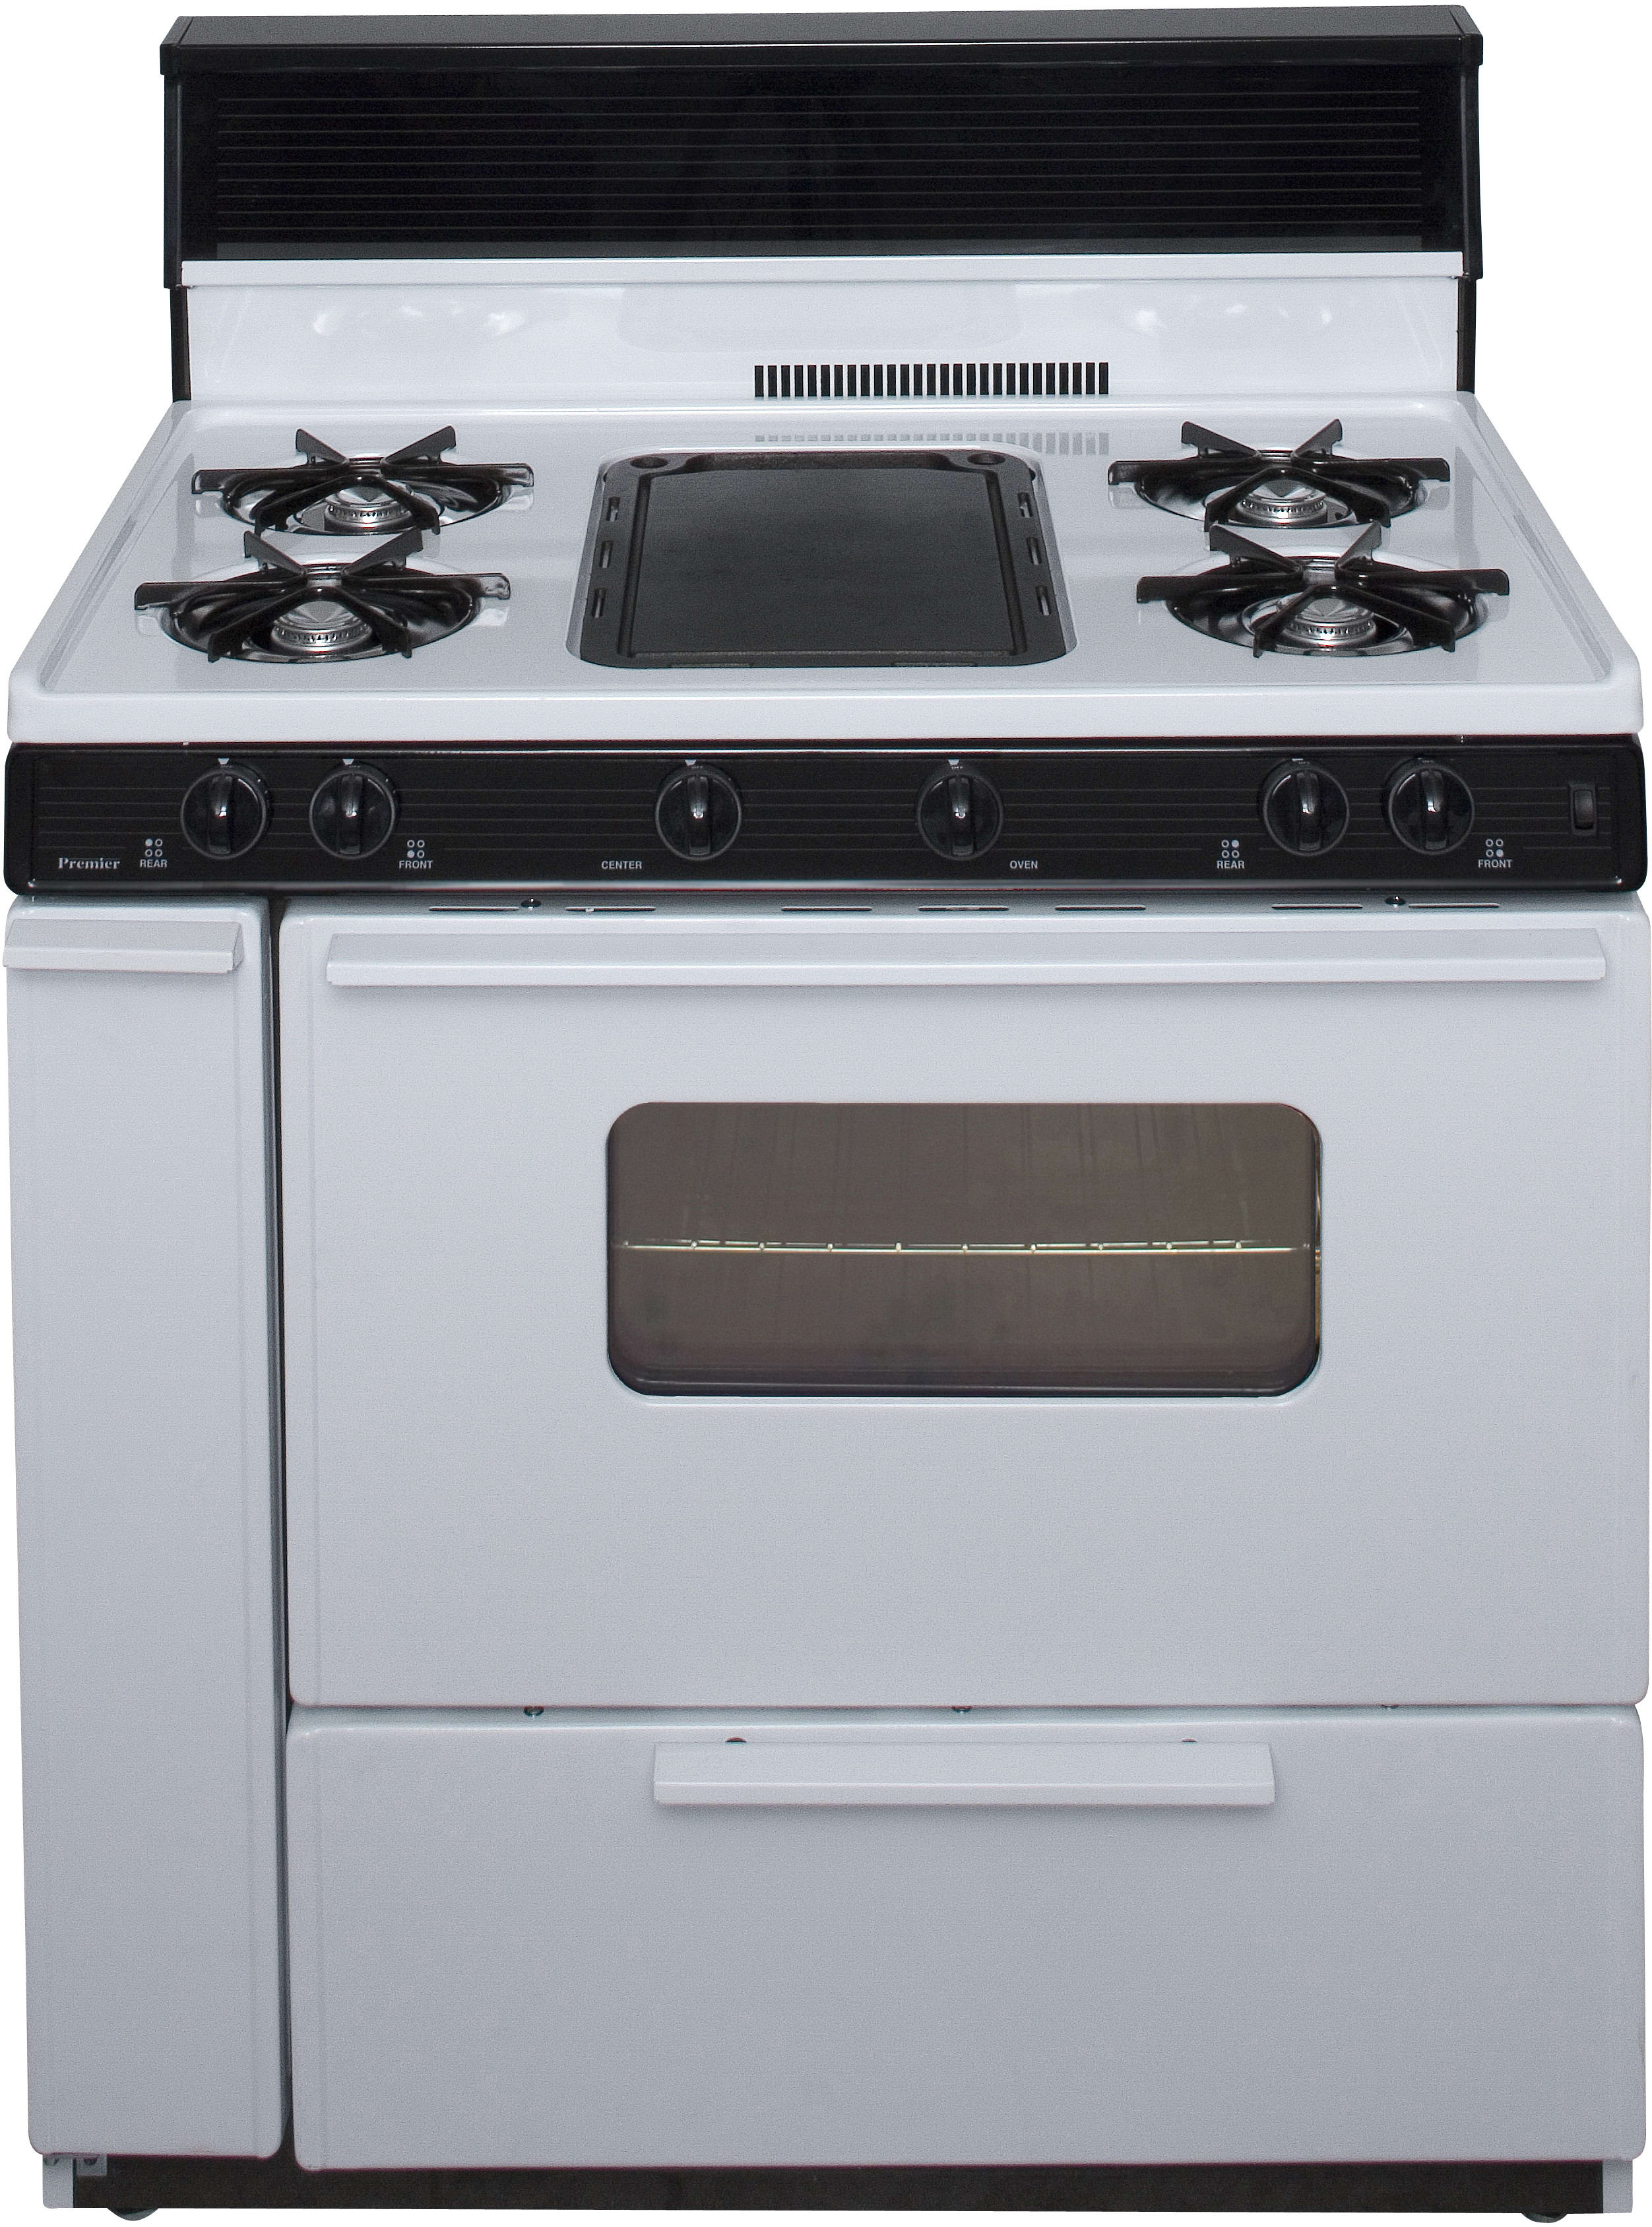 Premier Blk5s9wp 36 Inch Freestanding Gas Range With 5